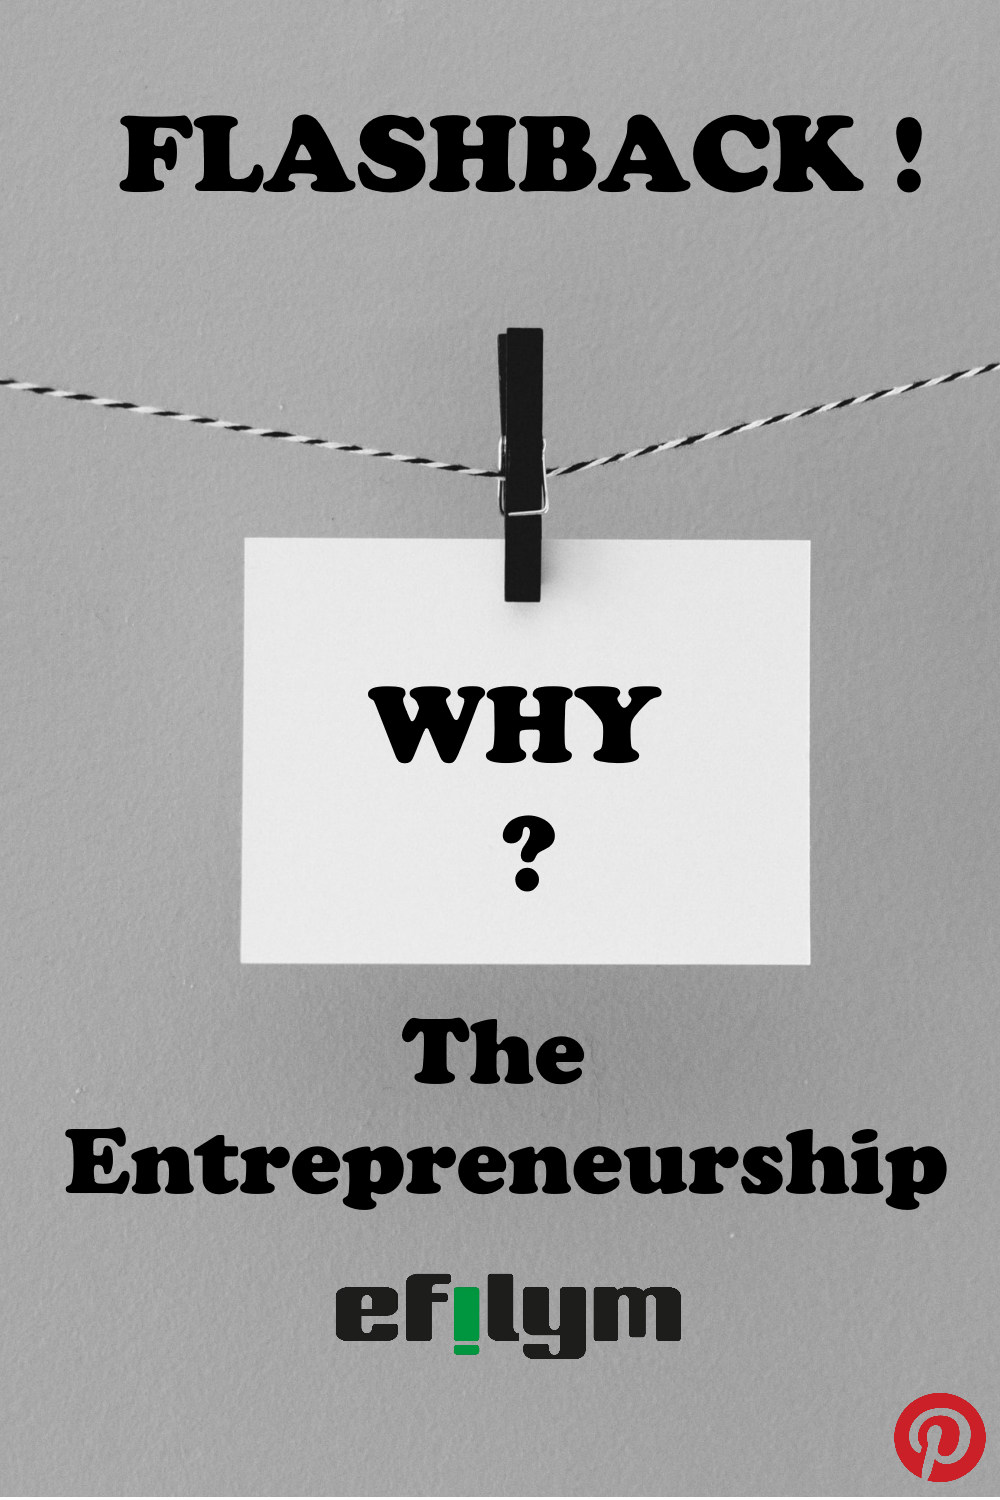 FLASHBACK - Why entrepreneurship?